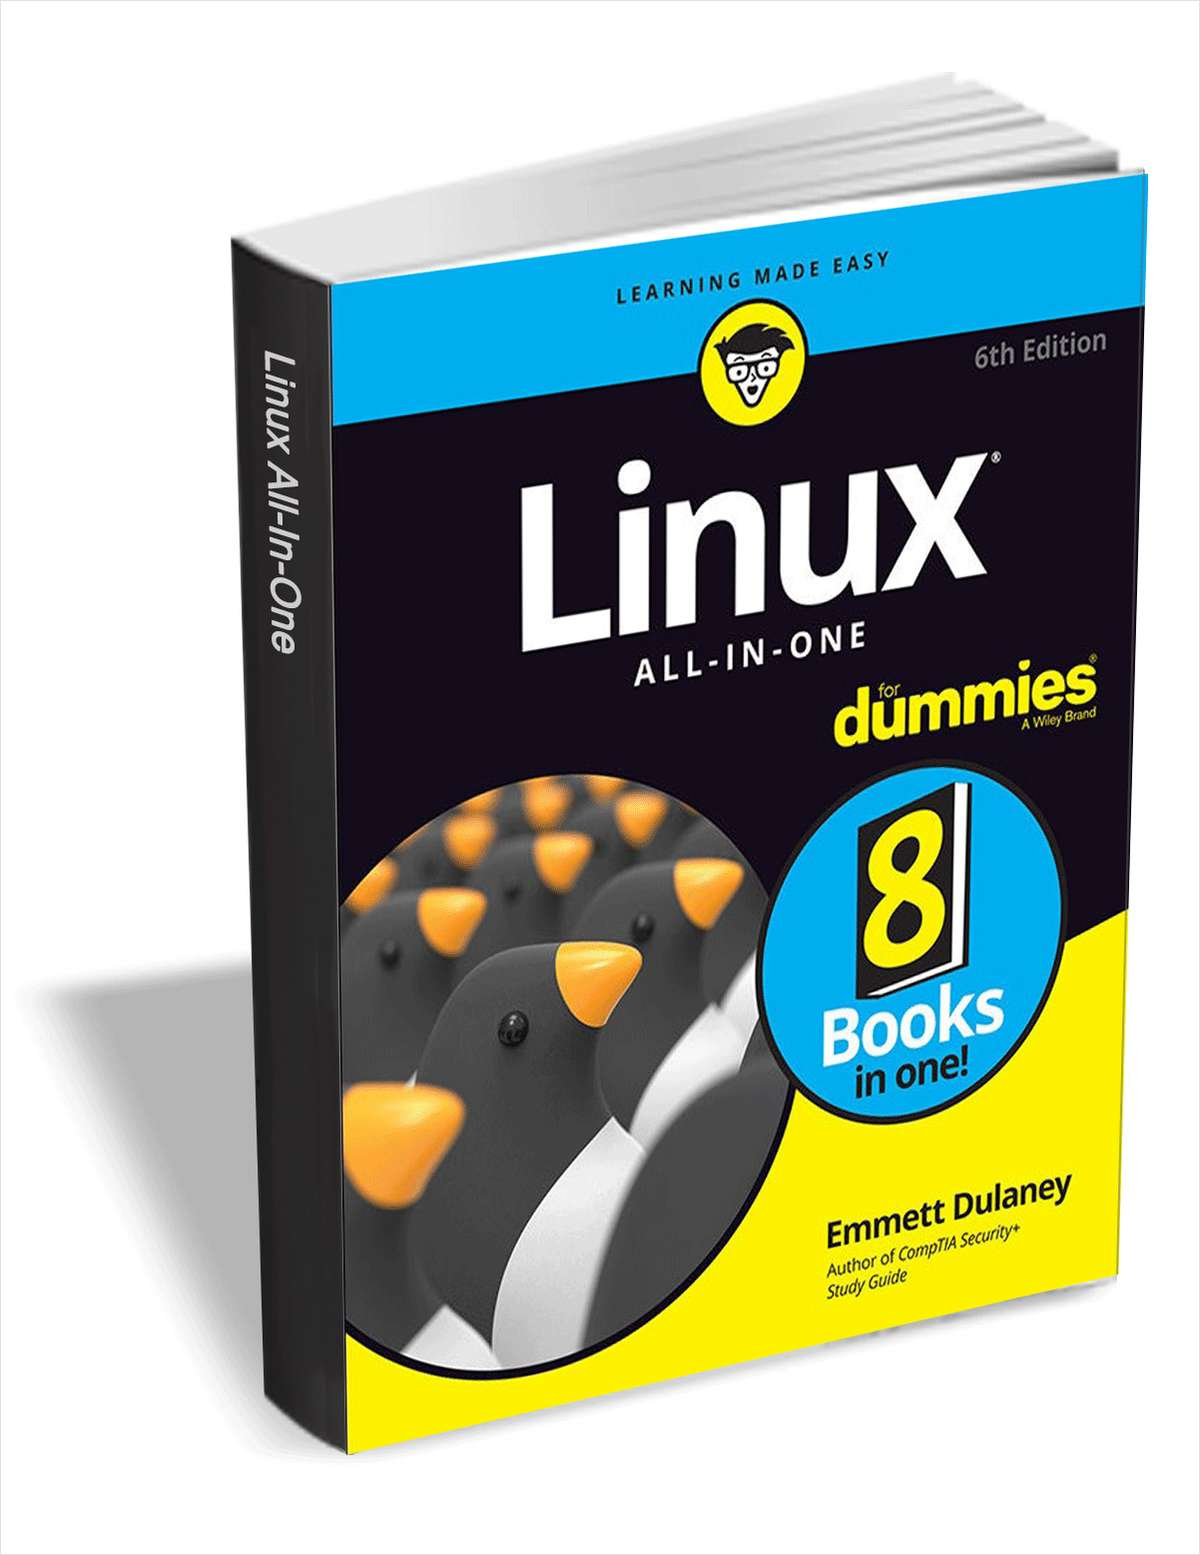 Linux All-In-One For Dummies, 6th Edition ($30 Value) FREE For a Limited Time